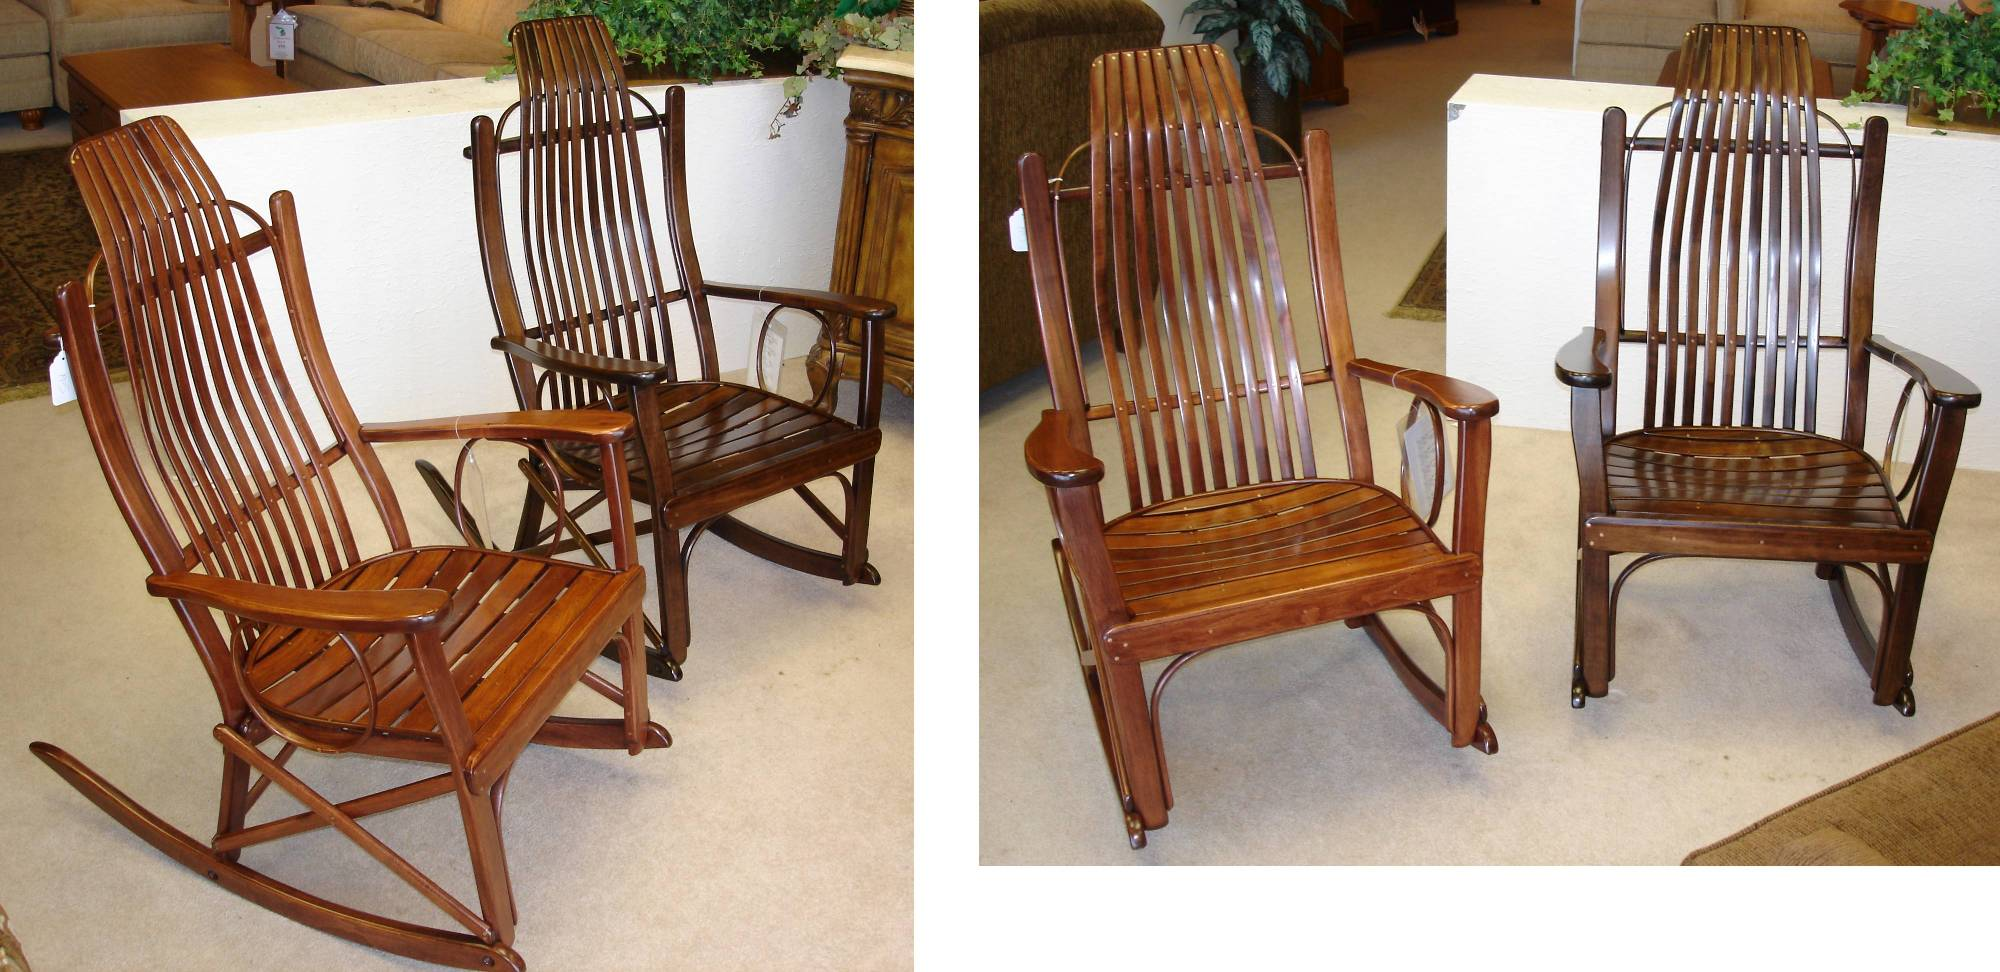 Amish Rocking Chair Jasen S Furniture Roseville Michigan